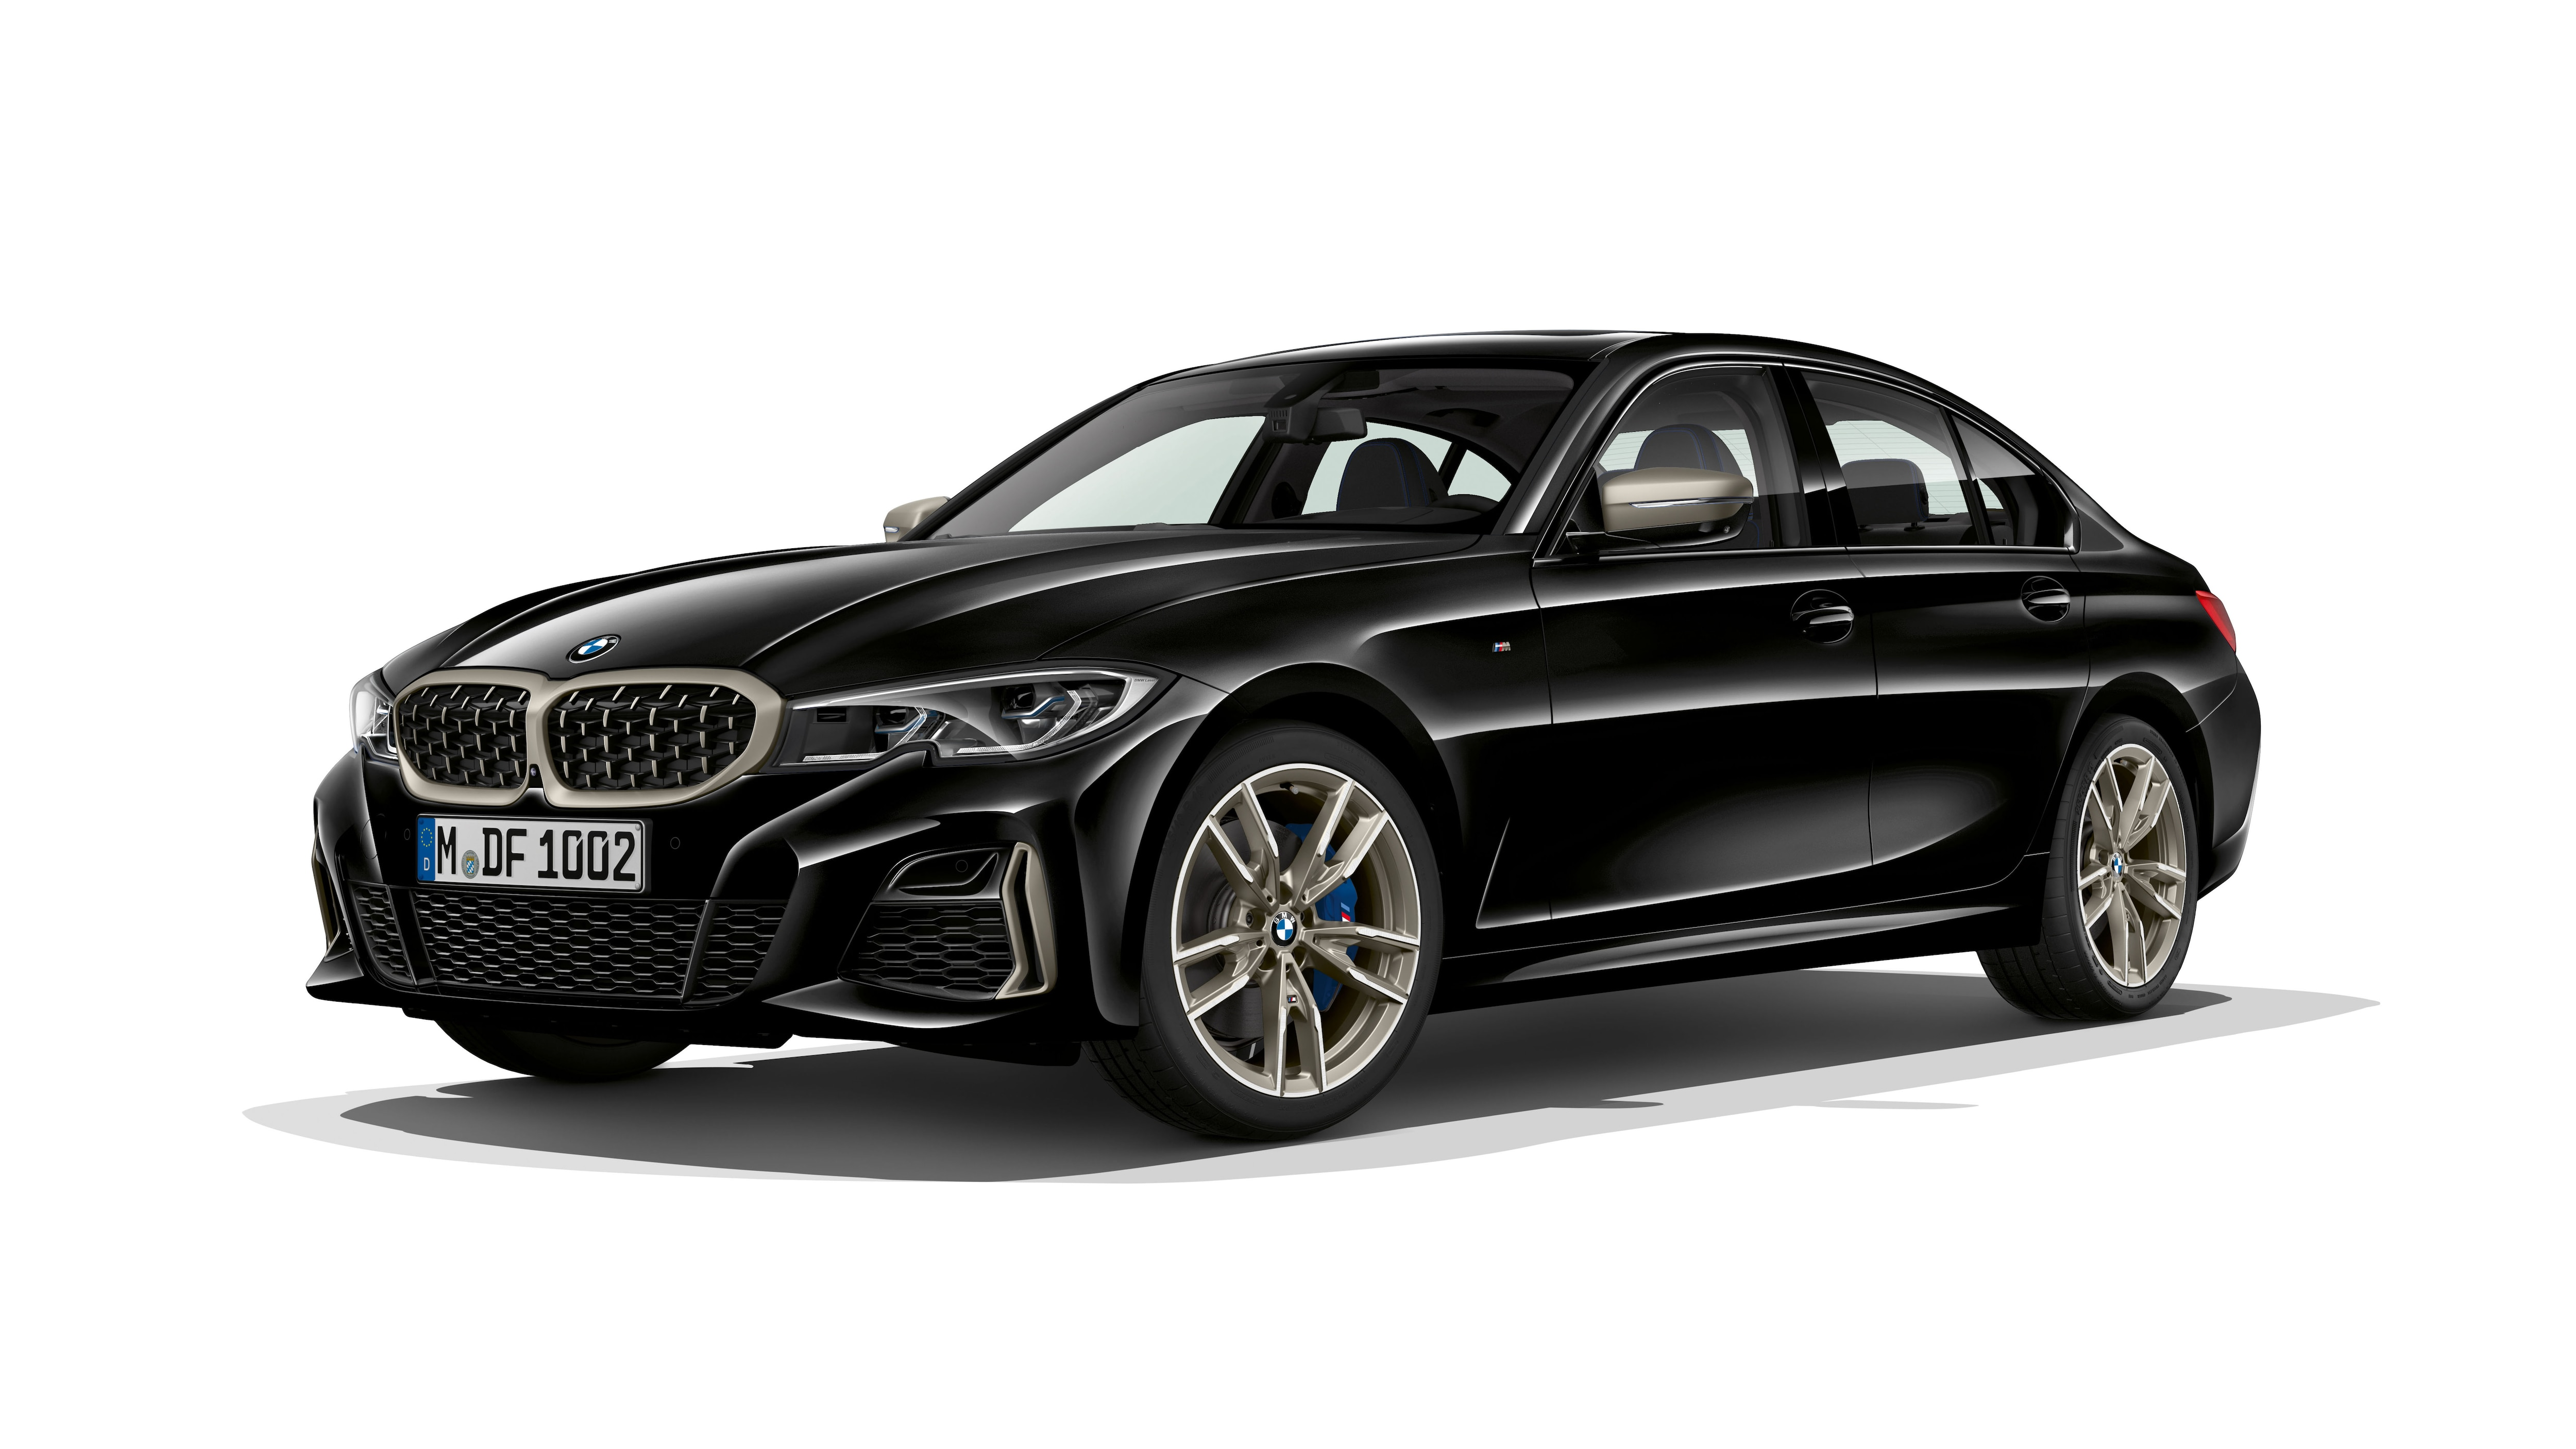 2020 BMW M340i xDrive Goes on Sale in July - Automobile